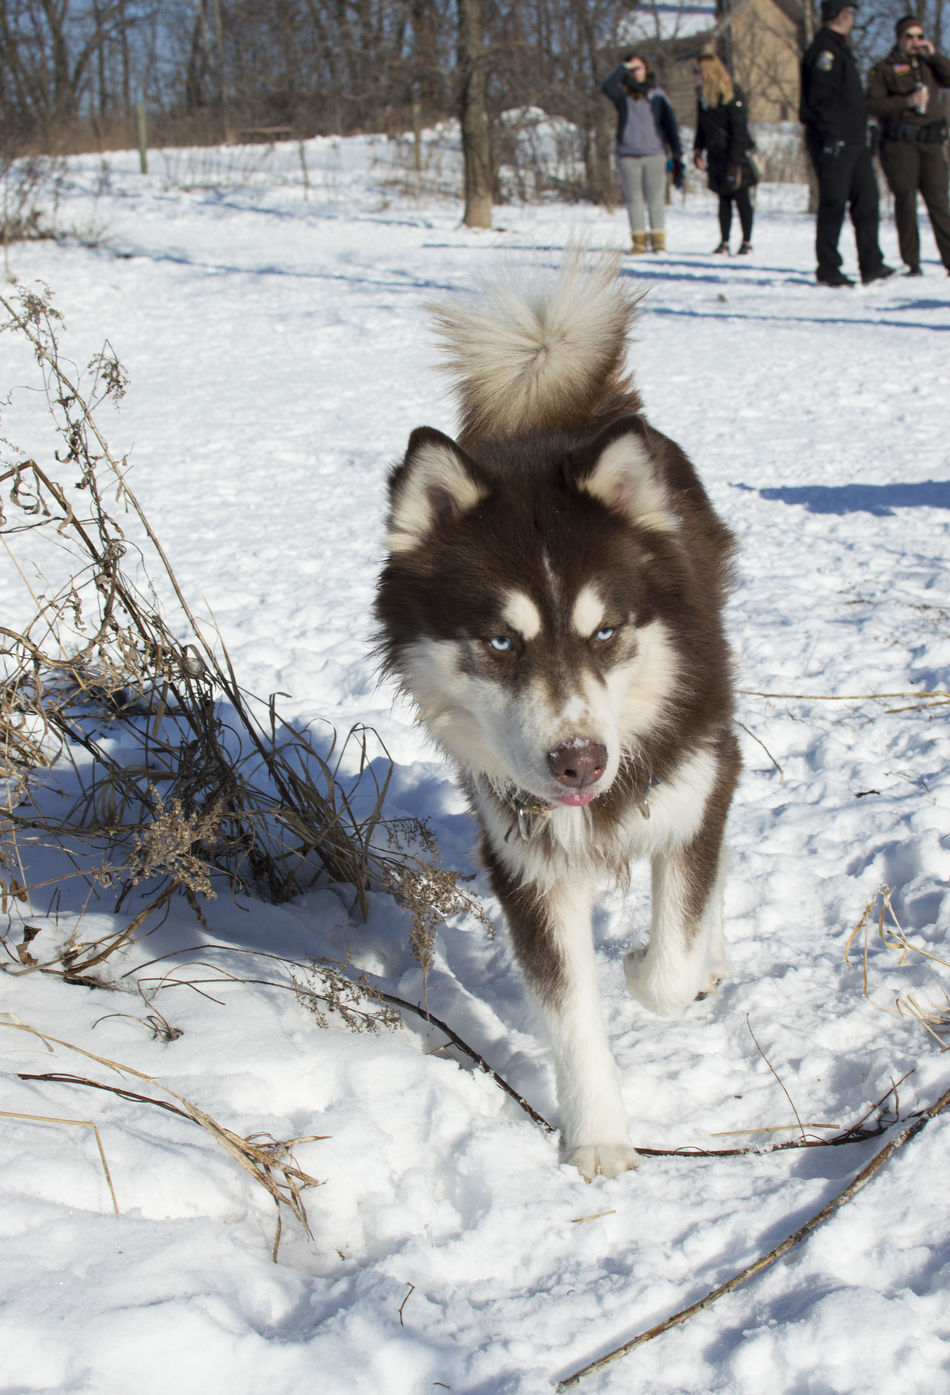 Animal Themes BlueEyes Cold Temperature Dog Dogs Frozen Husky Looking At Camera Minnesota Minnesota Nature Mn Nature One Animal Outdoors Pets Portrait Siberian Husky Siberian Husky Sled Dog Snow Weather White Color Winter